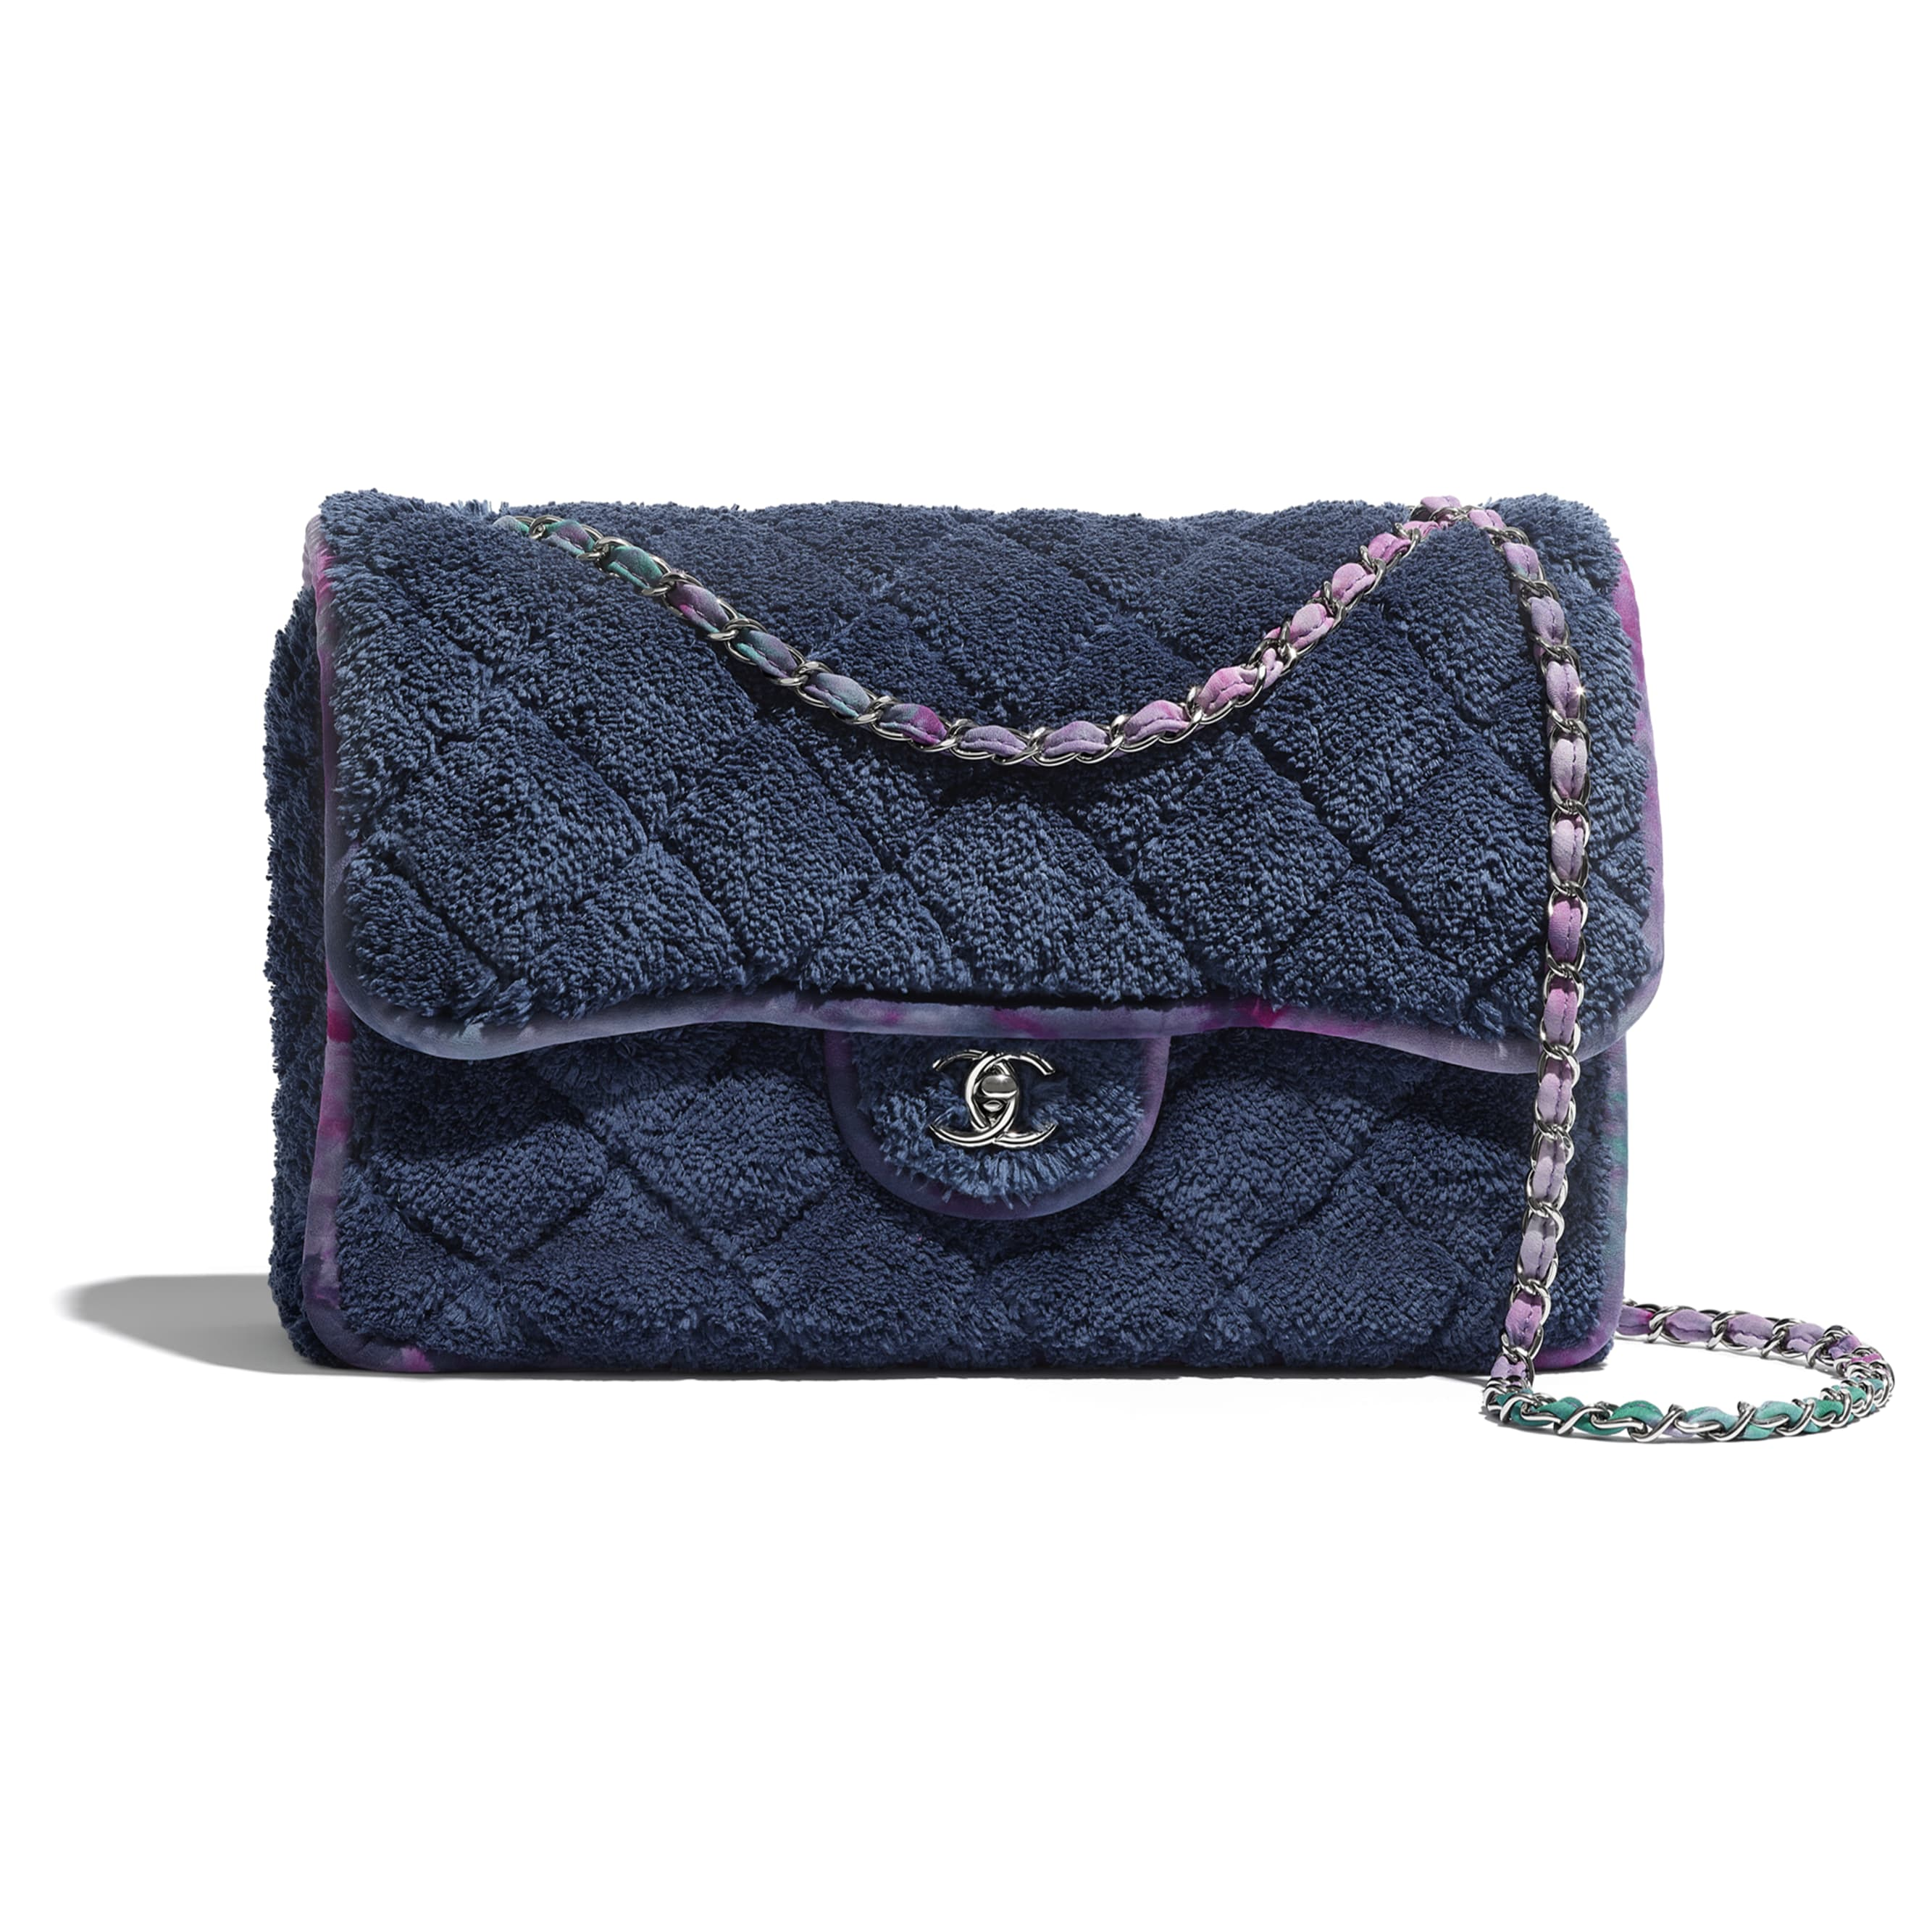 Large Flap Bag - Navy Blue & Purple - Mixed Fibers & Silver-Tone Metal - CHANEL - Default view - see standard sized version